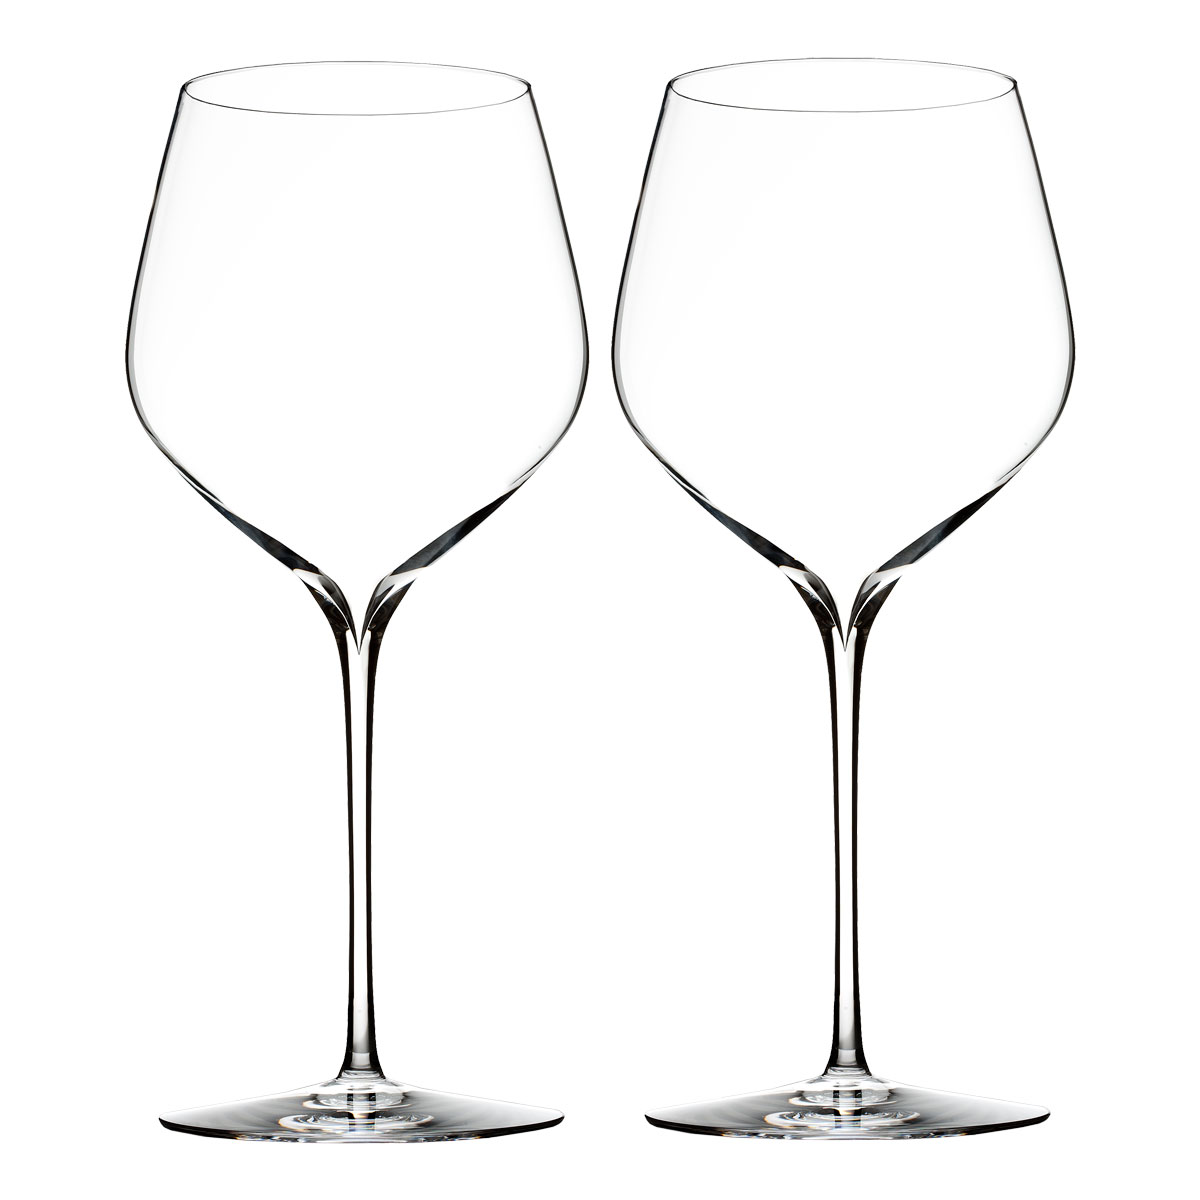 Waterford Crystal, Elegance Cabernet Sauvignon Crystal Wine Glasses, Pair